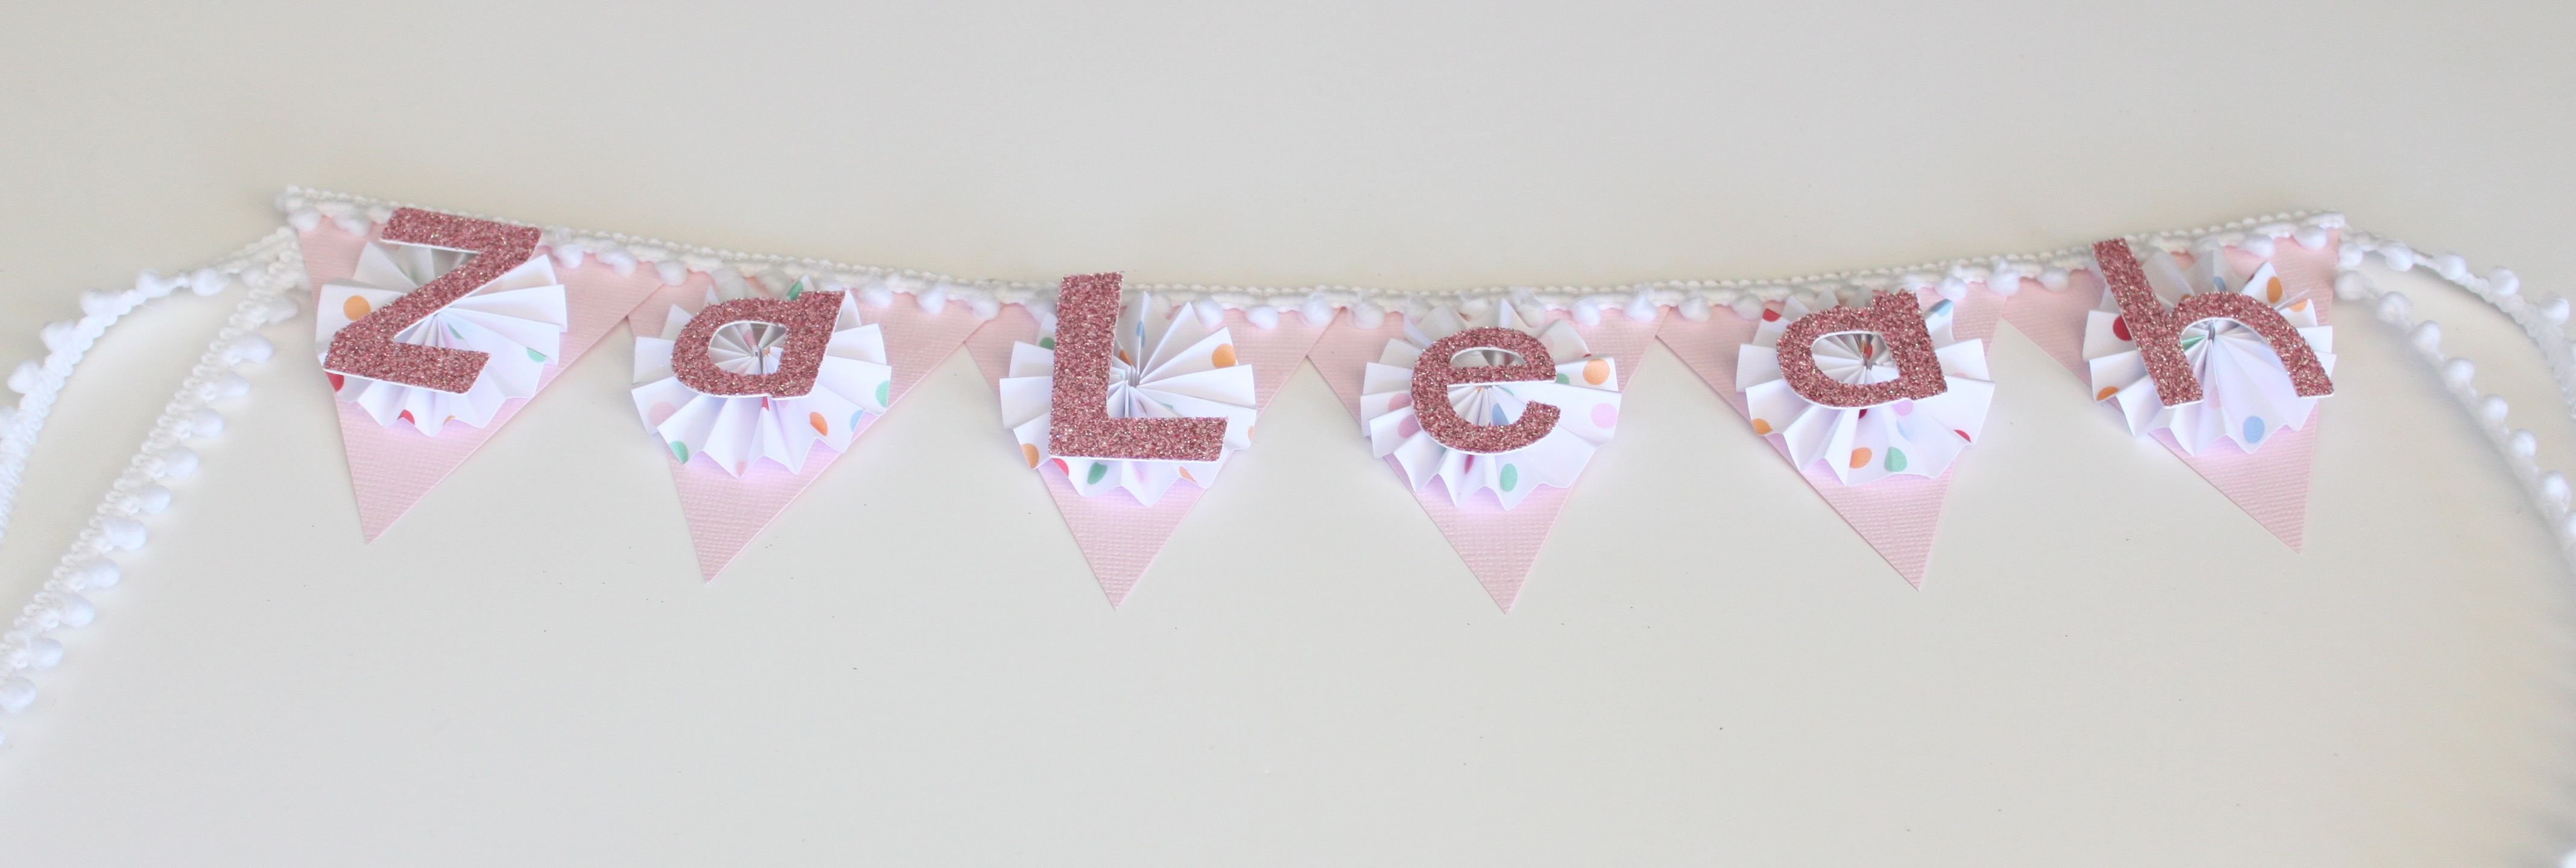 custom birthday high chair name banners · the banner shoppe